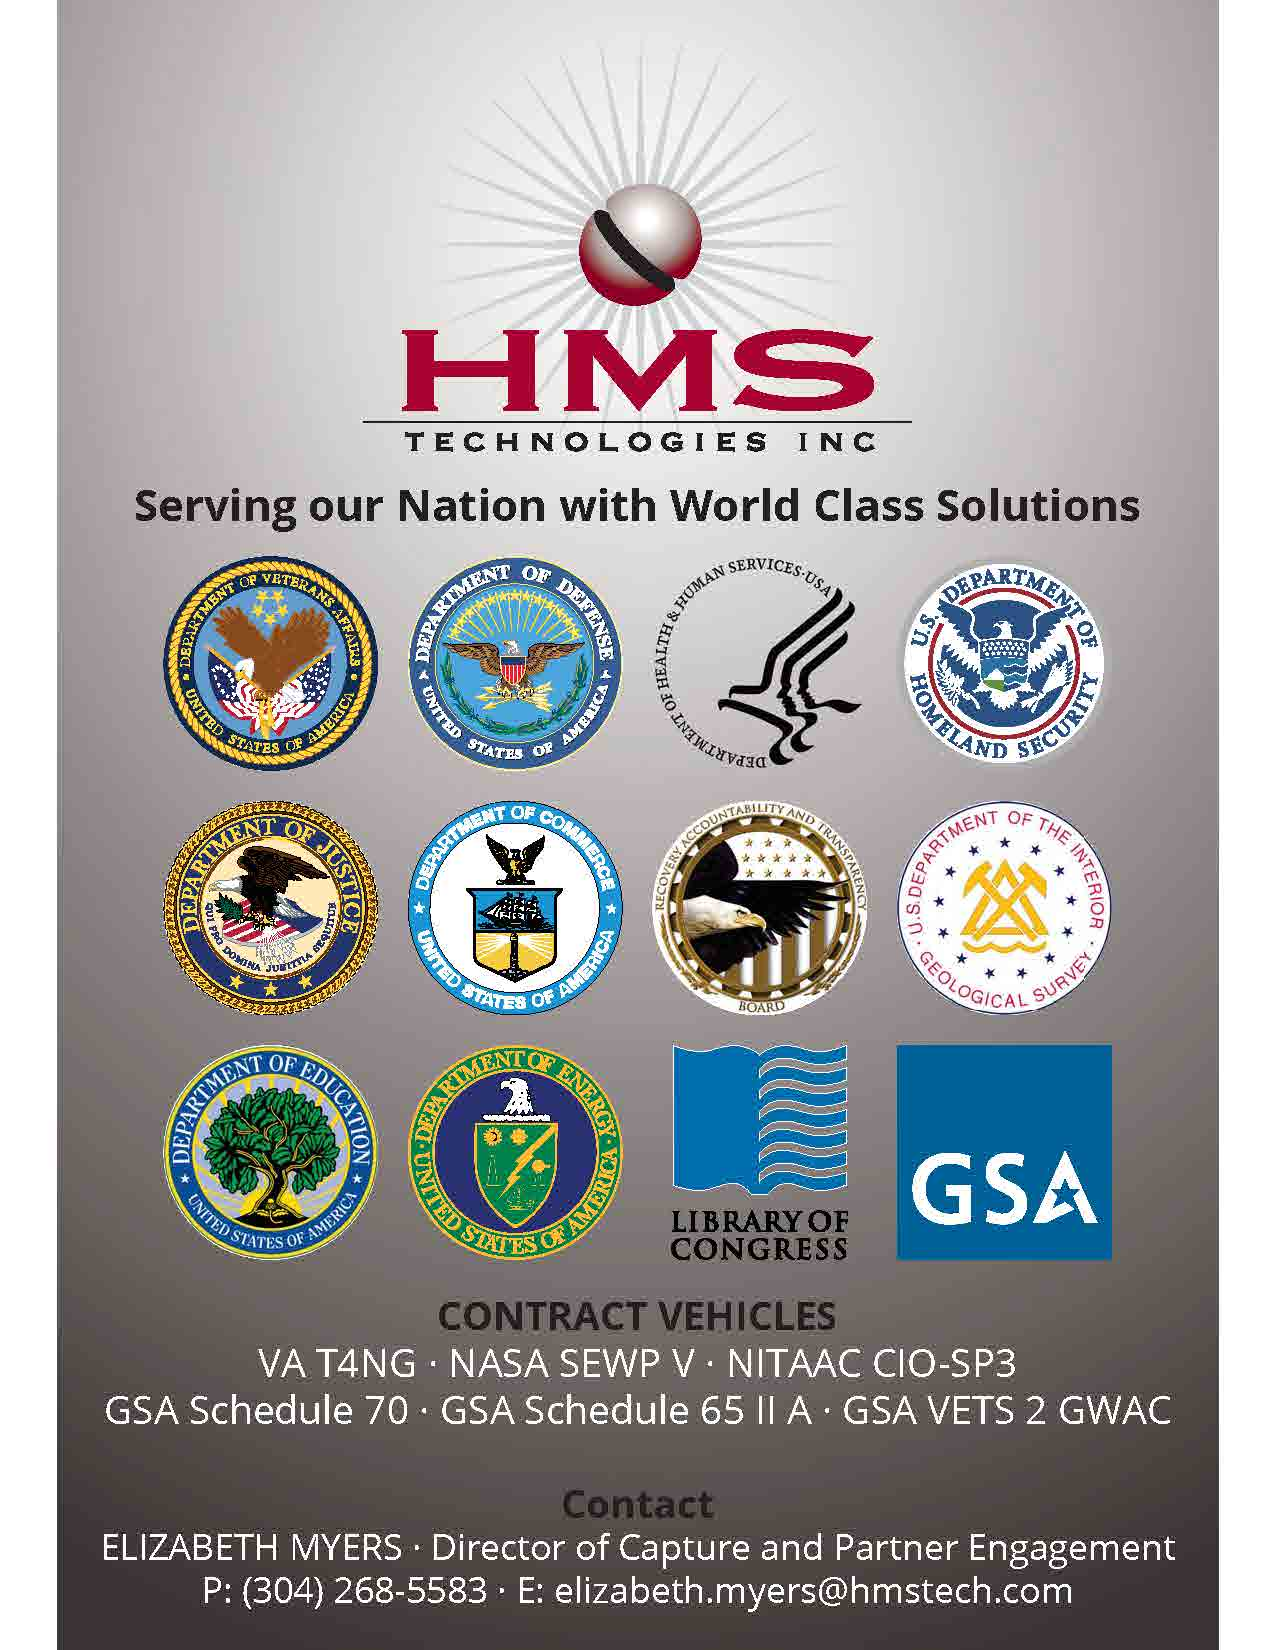 HMS TECHNOLOGIES INC. Serving our Nation with World Class Solutions